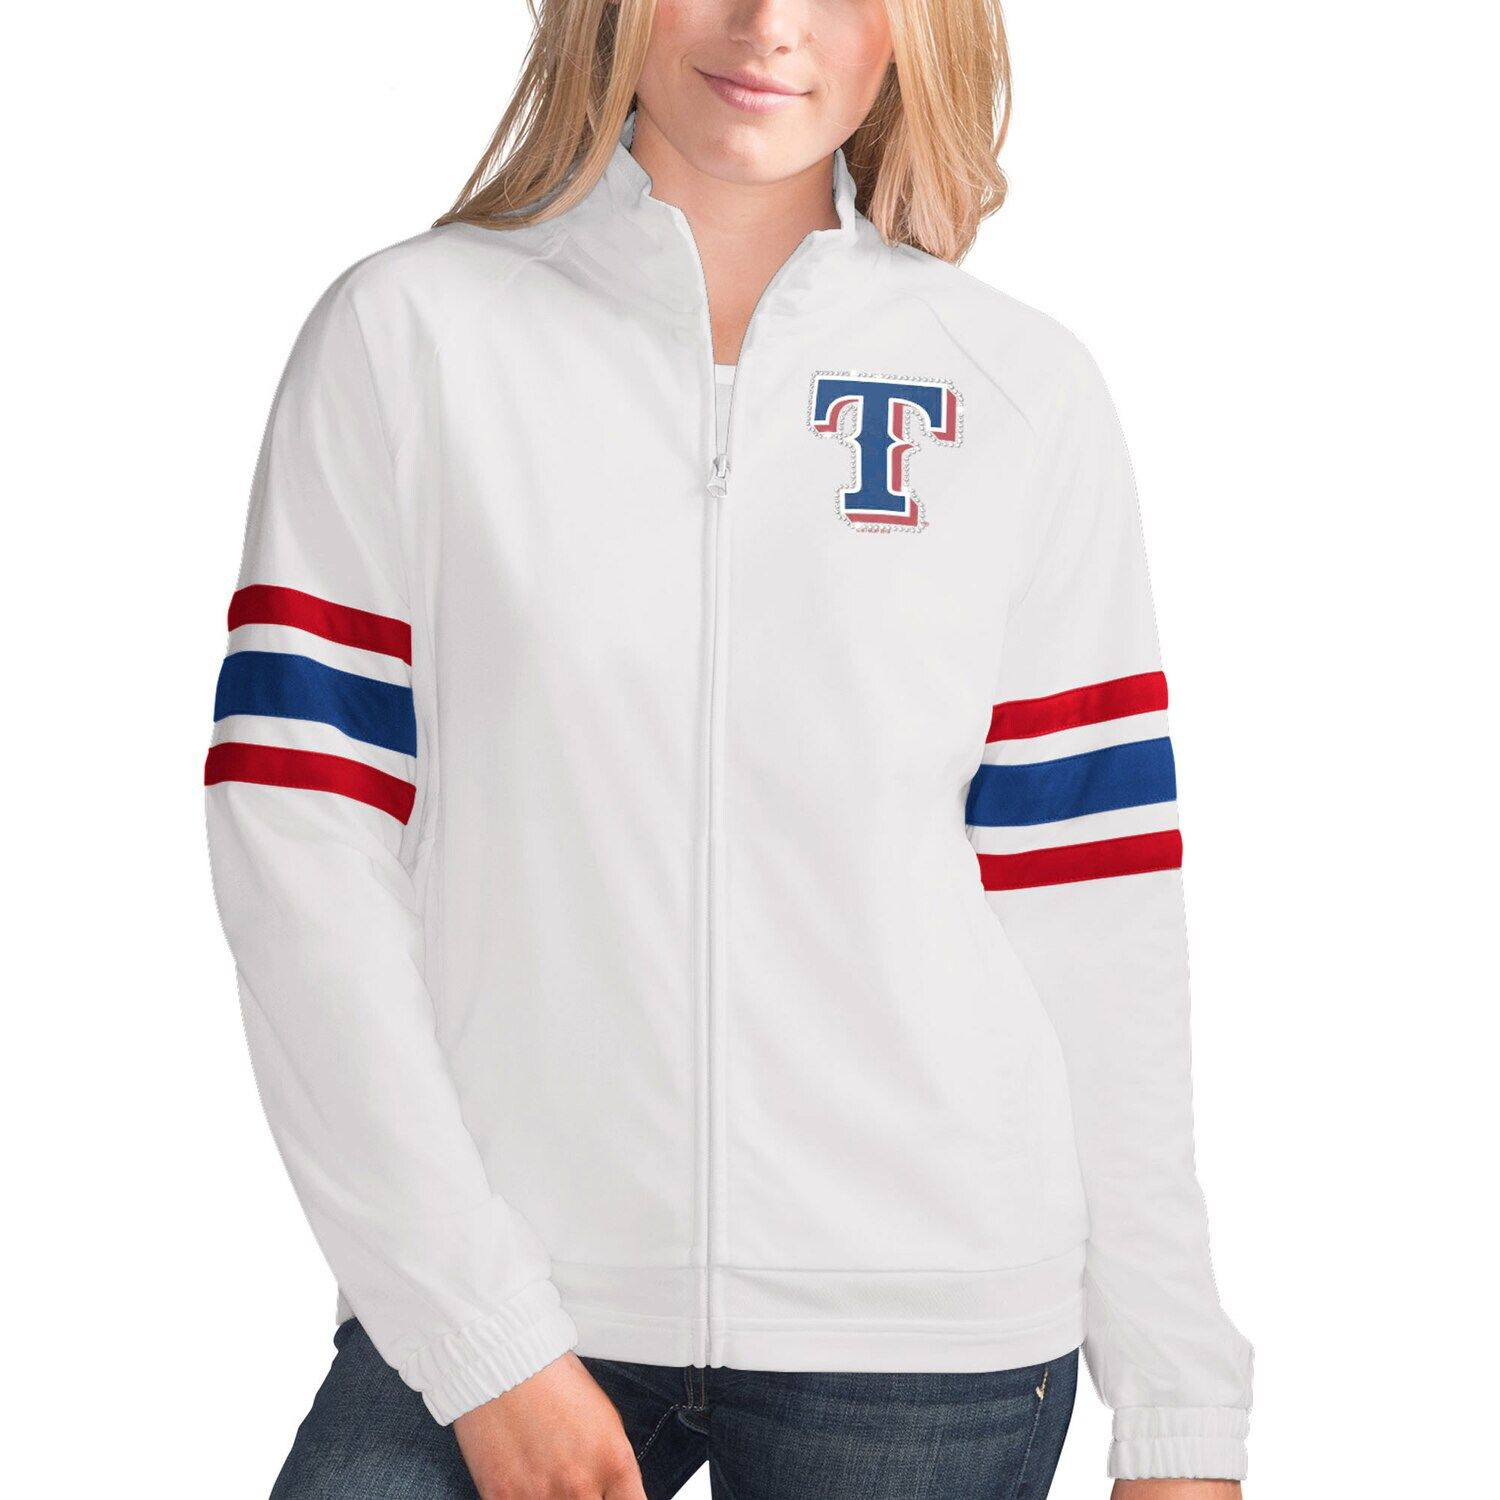 Women S G Iii 4her By Carl Banks White Texas Rangers Game Score Full Zip Track Jacket Affiliate Banks White Texas In 2020 Jackets Track Jackets Chicago Cubs Game